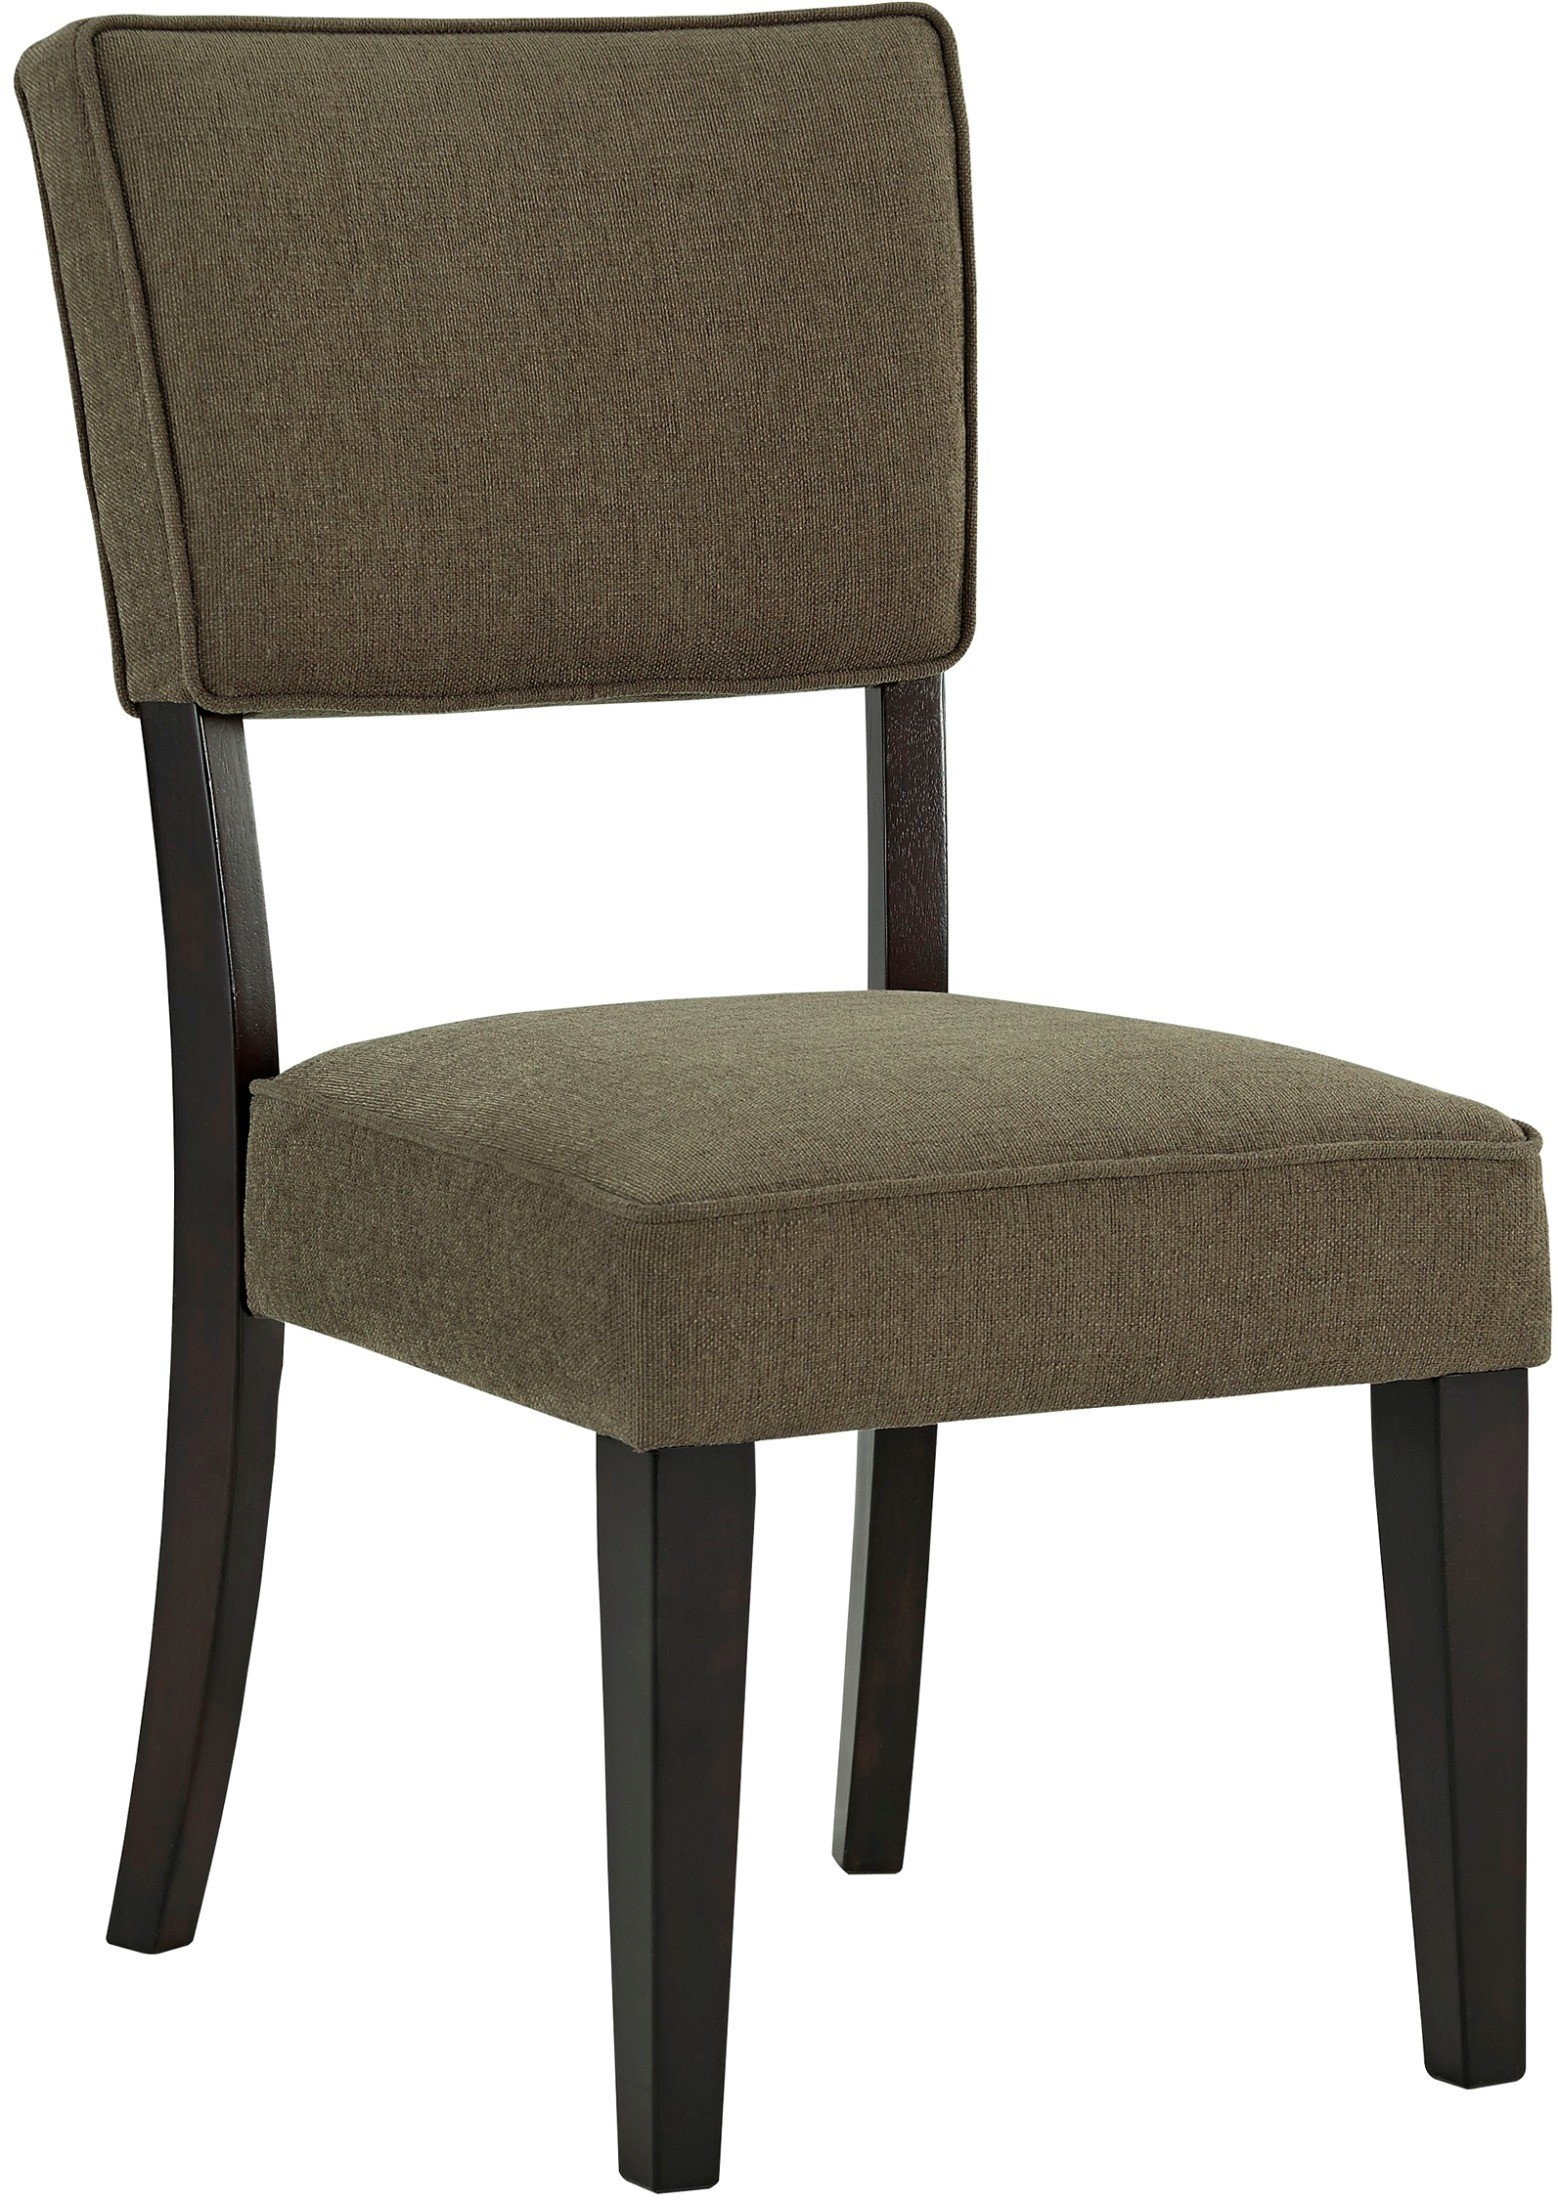 Upholstered Dining Chairs Gavelston Green Dining Upholstered Side Chair Set Of 2